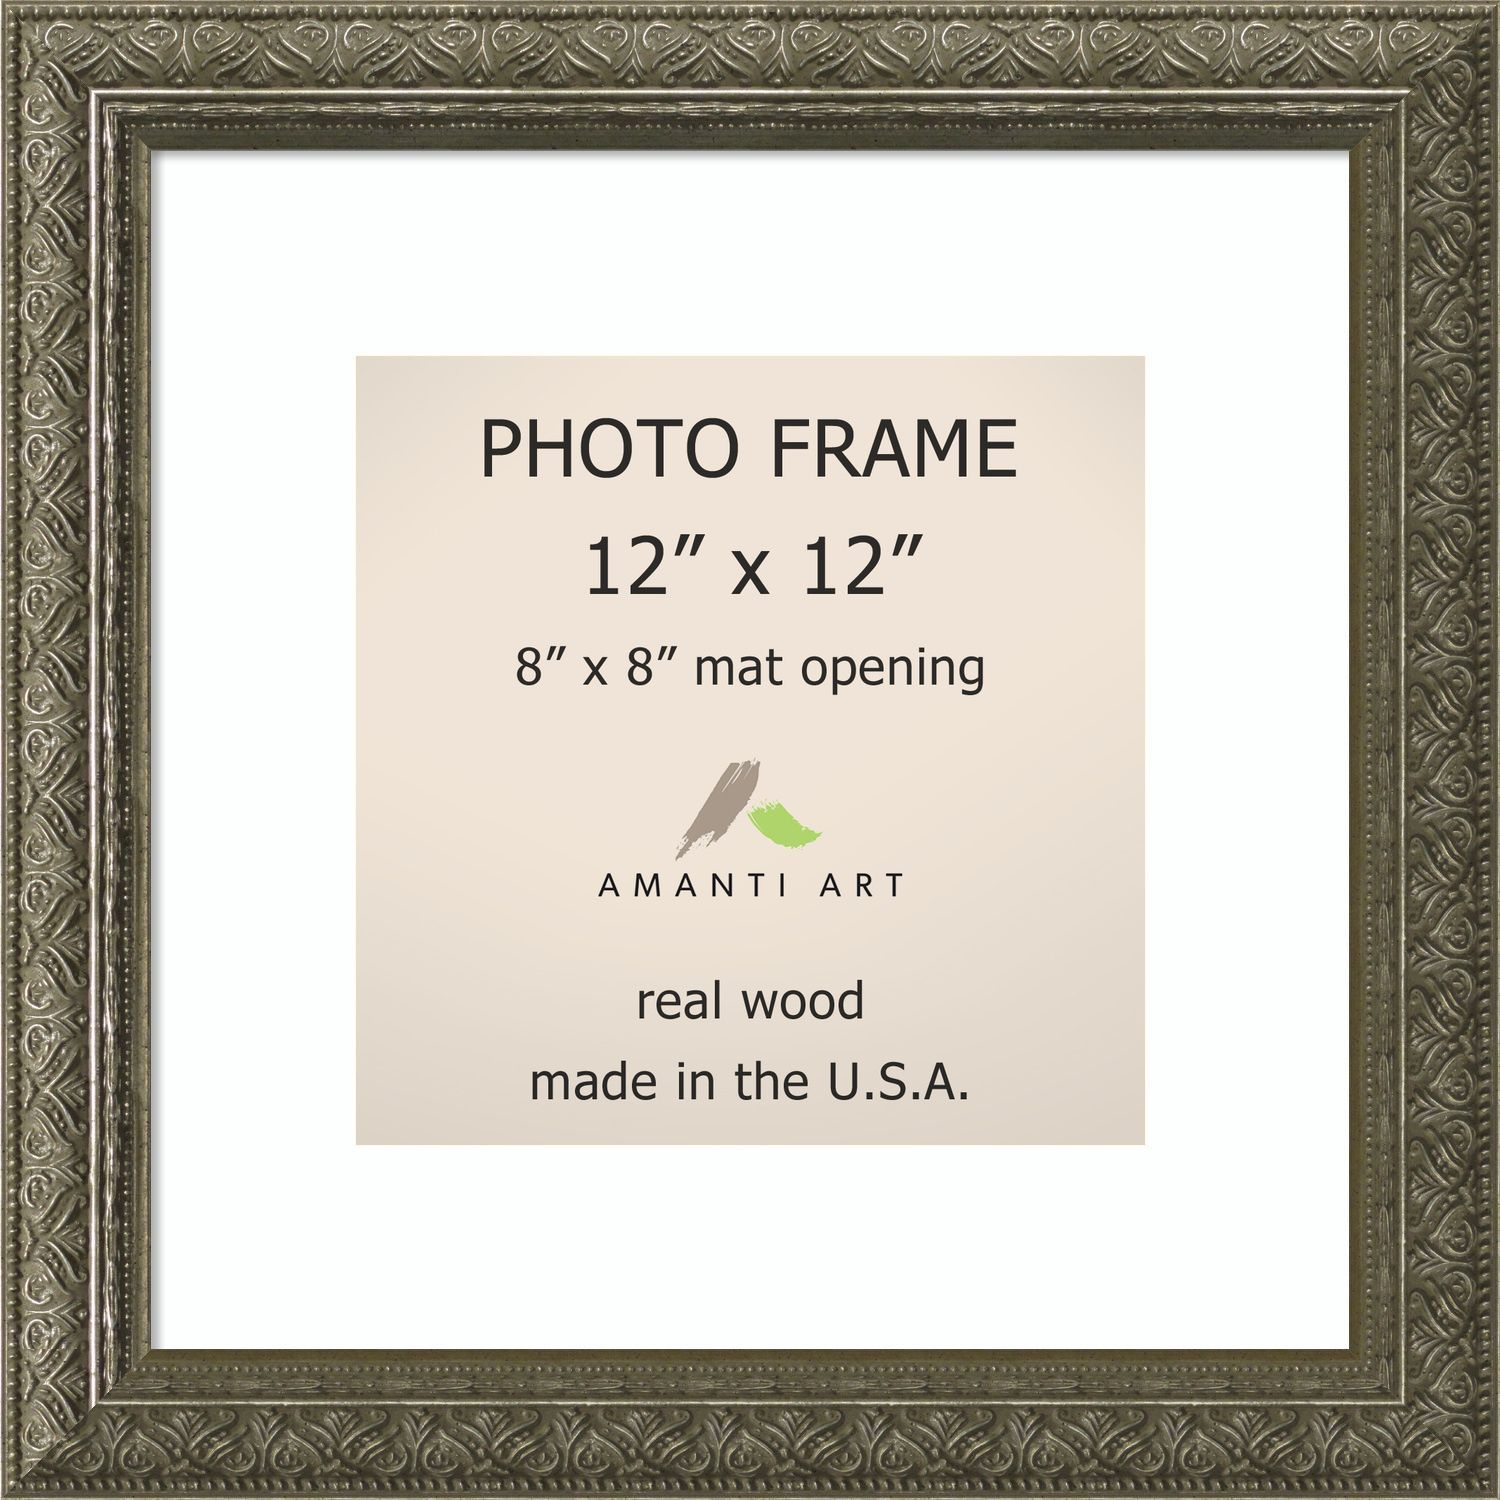 Barcelona Pewter Photo Frame 12x12 Matted To 8x8 14 X 14 Inch Picture Frame Sizes Photo Frame Black Picture Frames